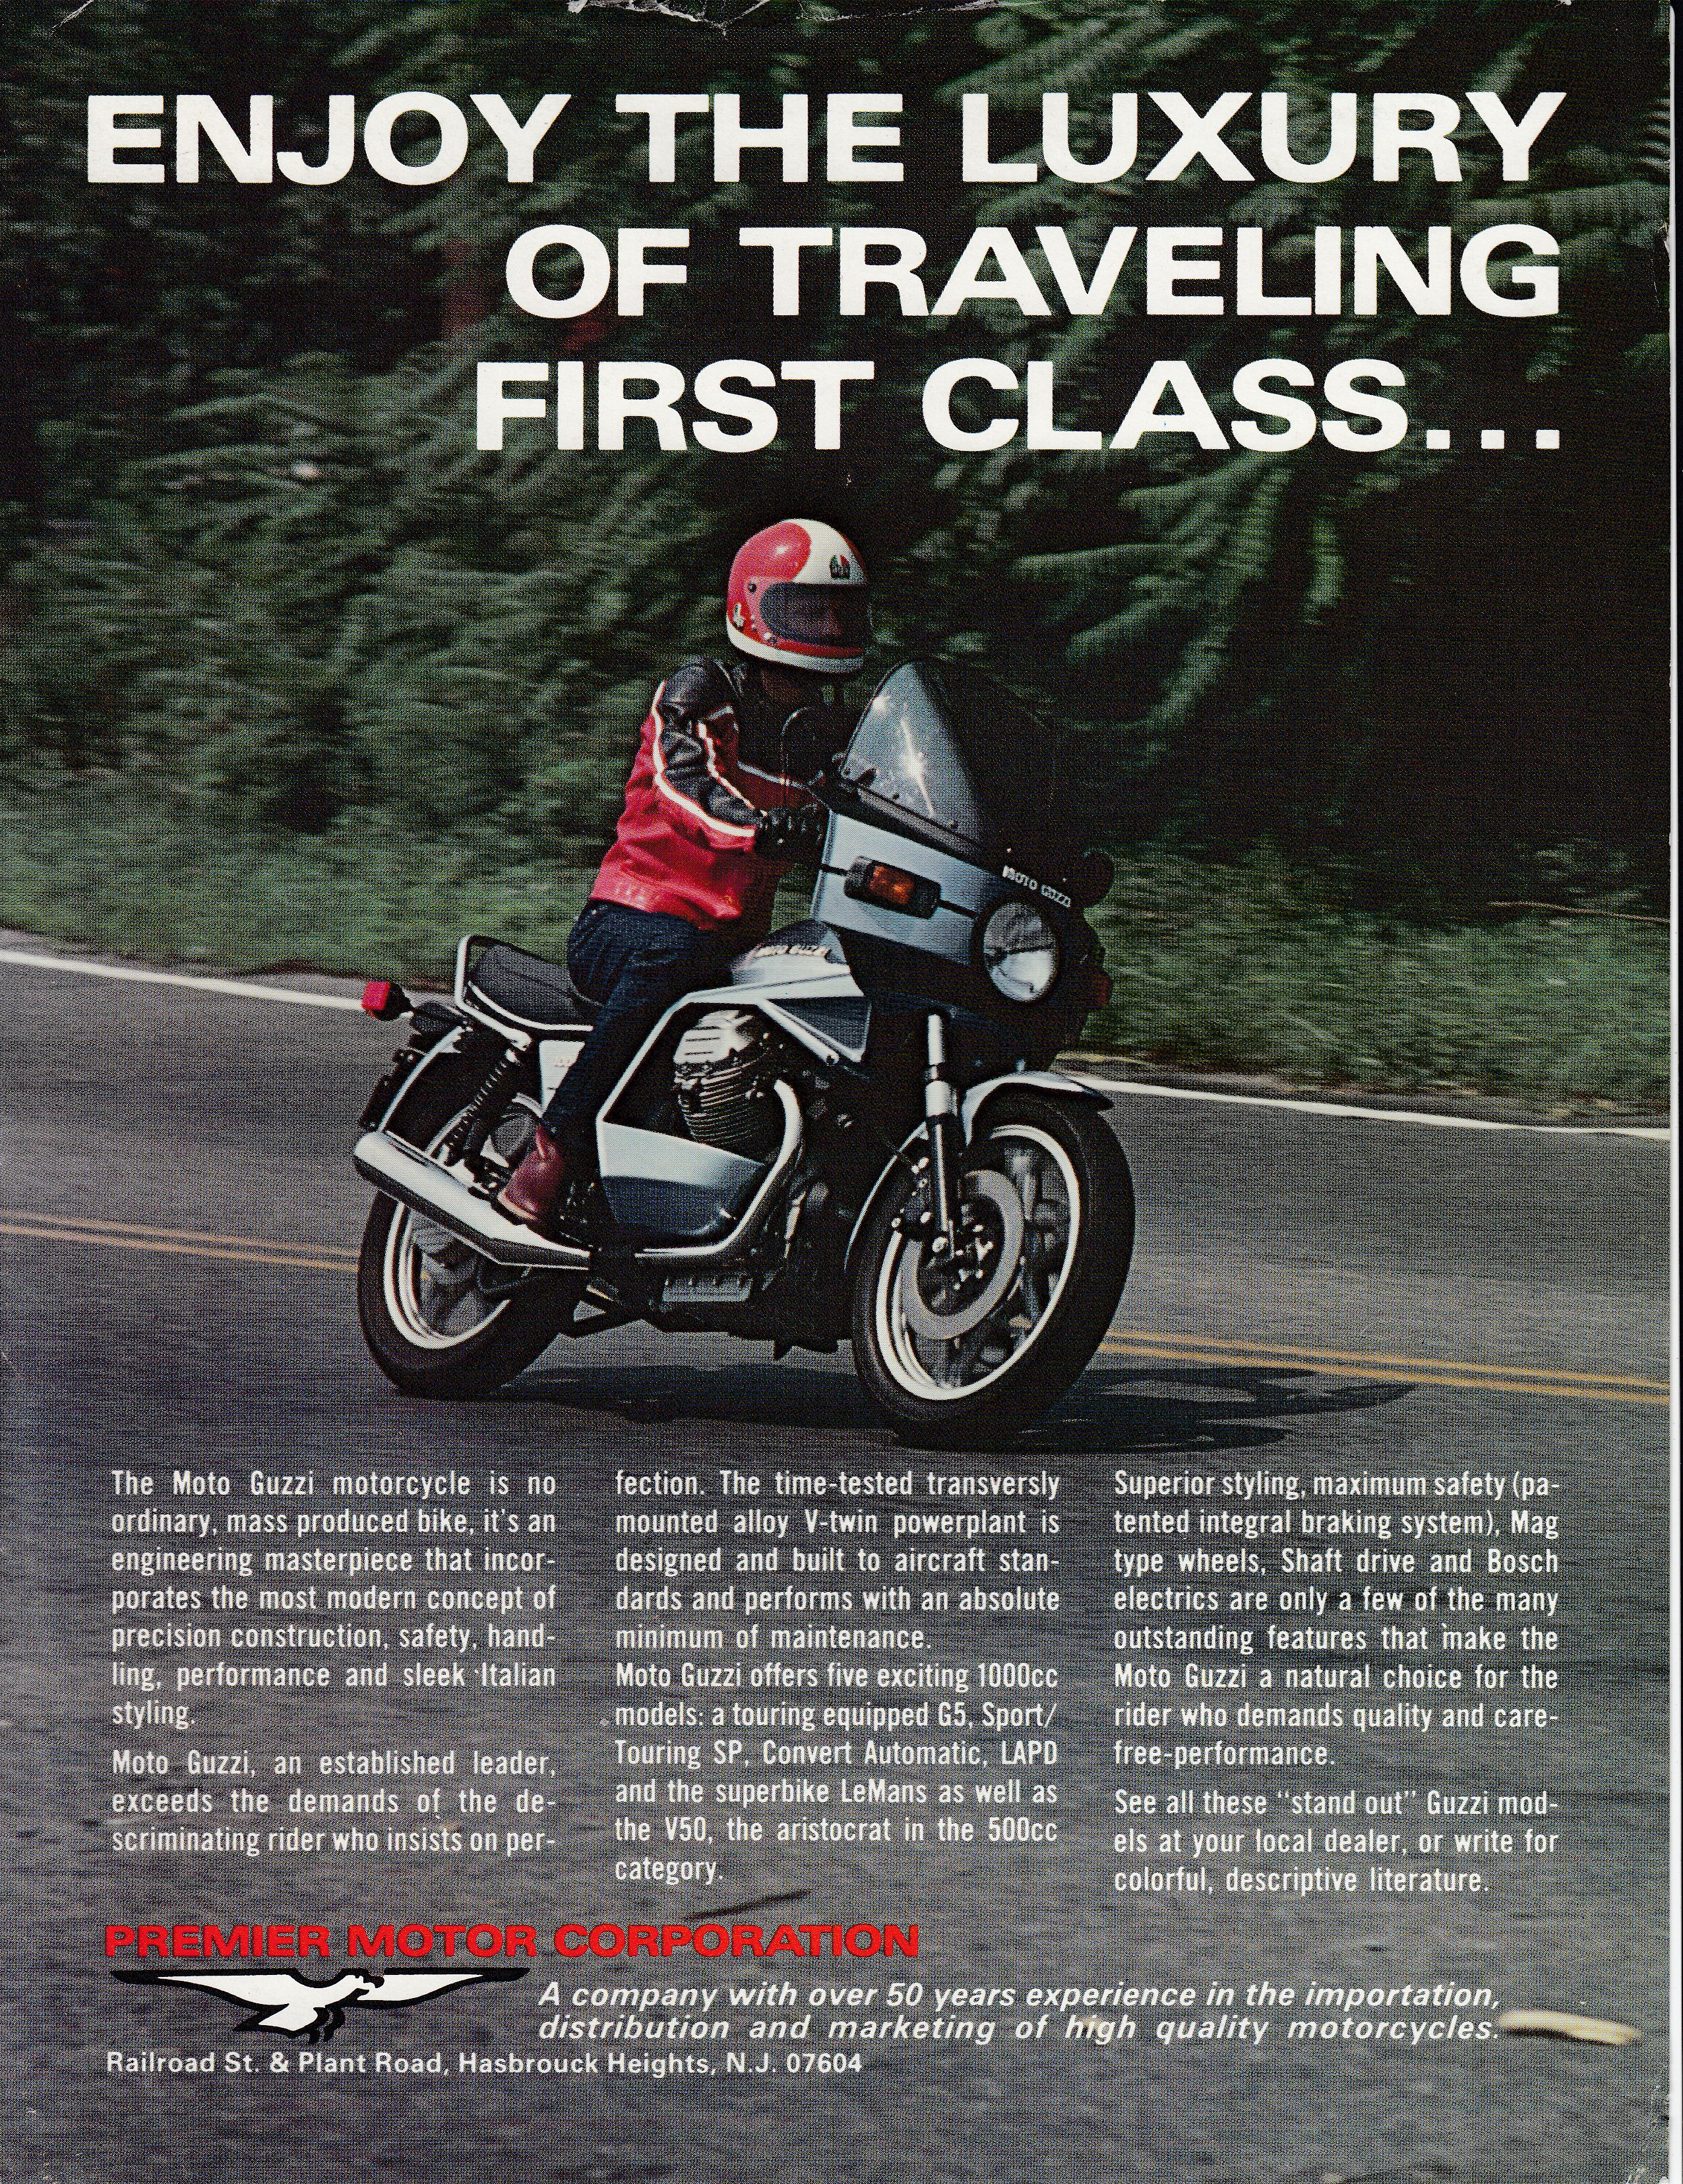 Brochure - Moto Guzzi 1000 SP Enjoy the luxury of traveling first class...